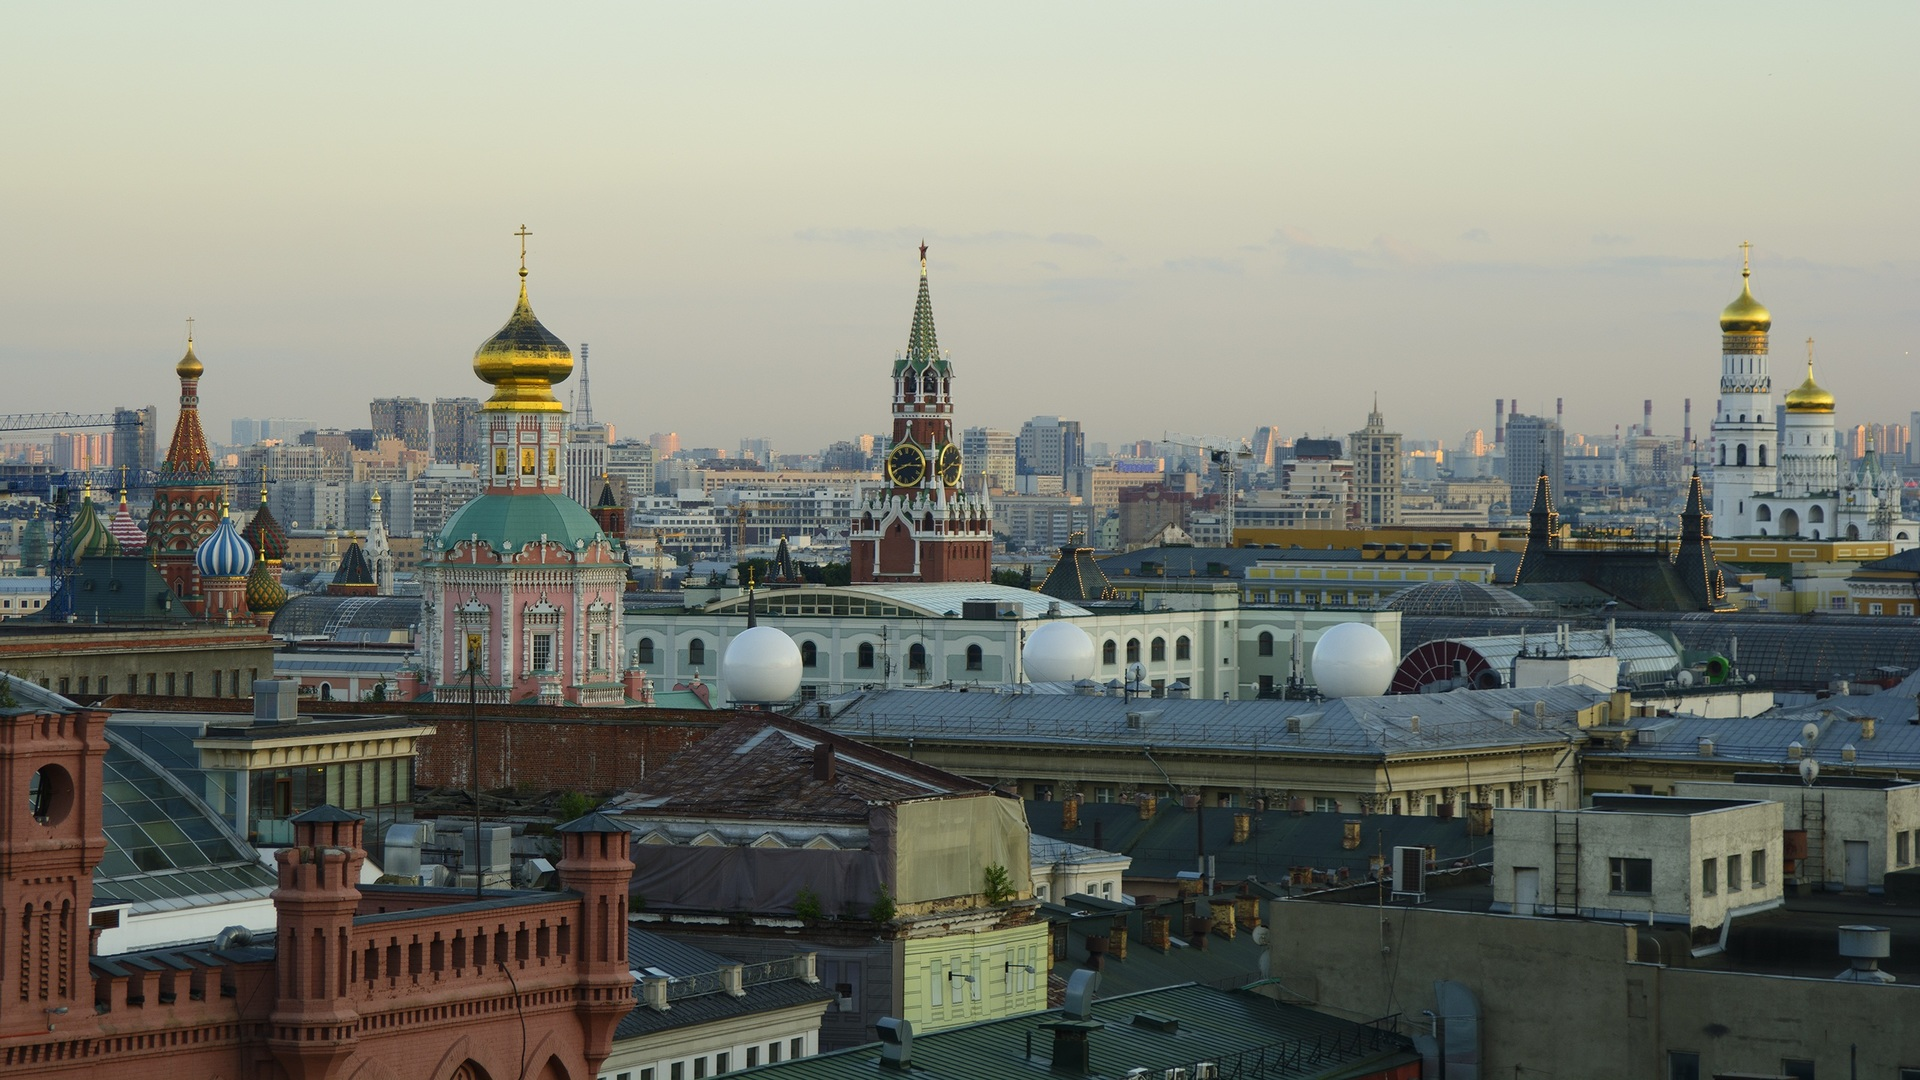 skyline-town-roof-city-cityscape-tower-7